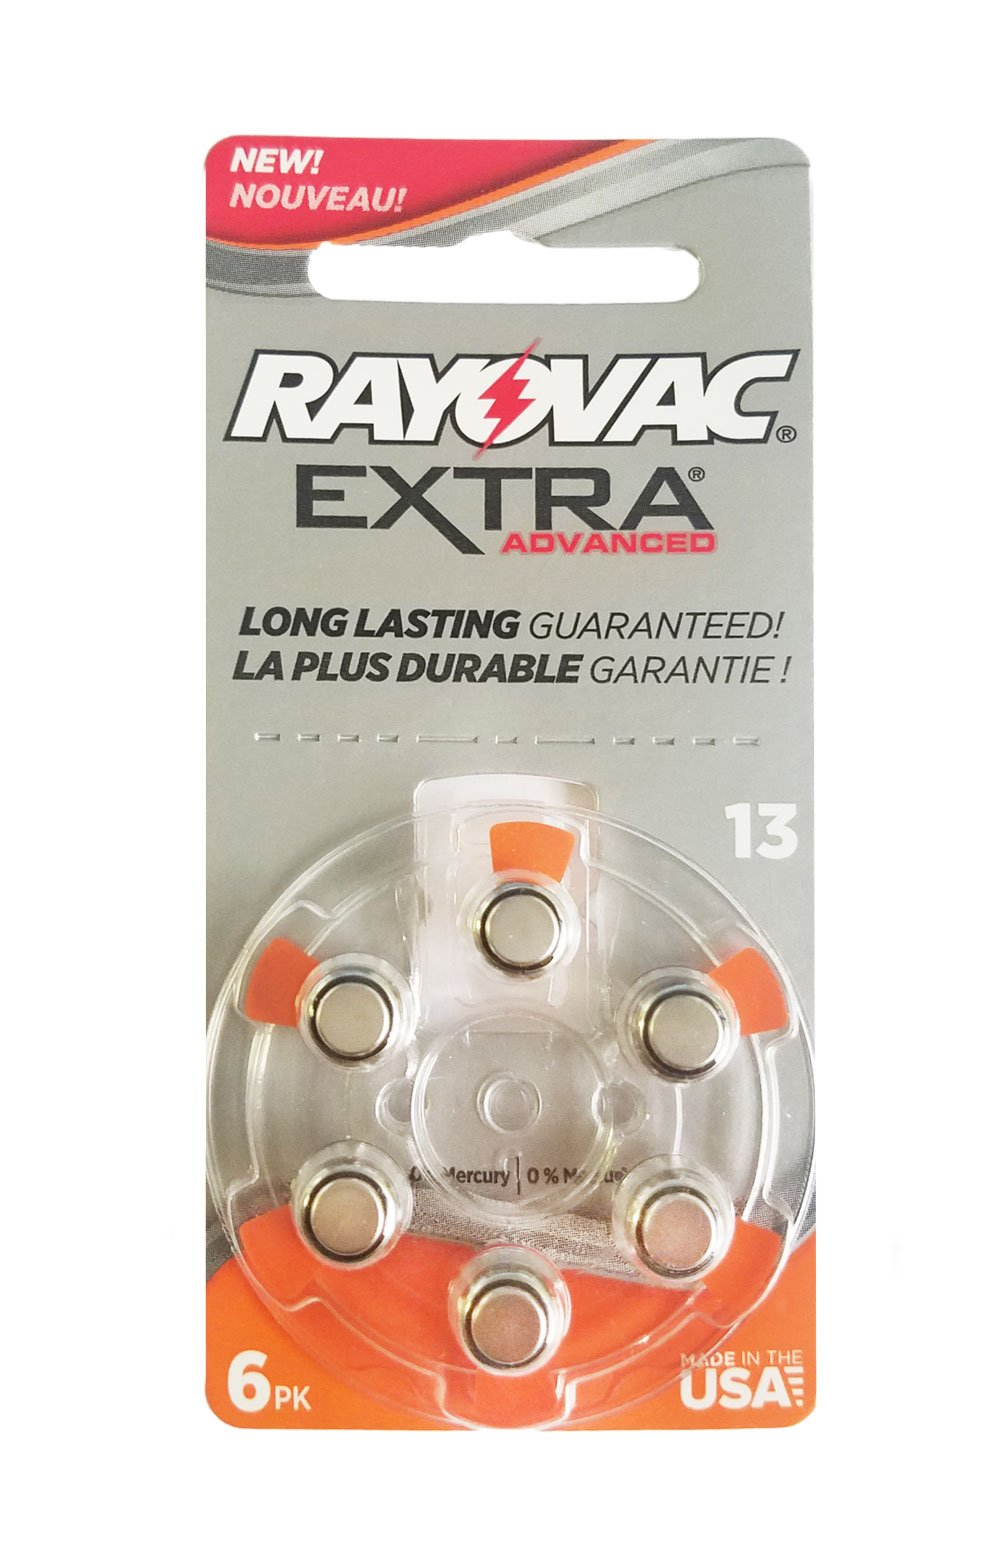 60 Rayovac Extra Mercury Free Hearing Aid Batteries Size: 13 + Battery Holder Keychain Kit by Rayovac